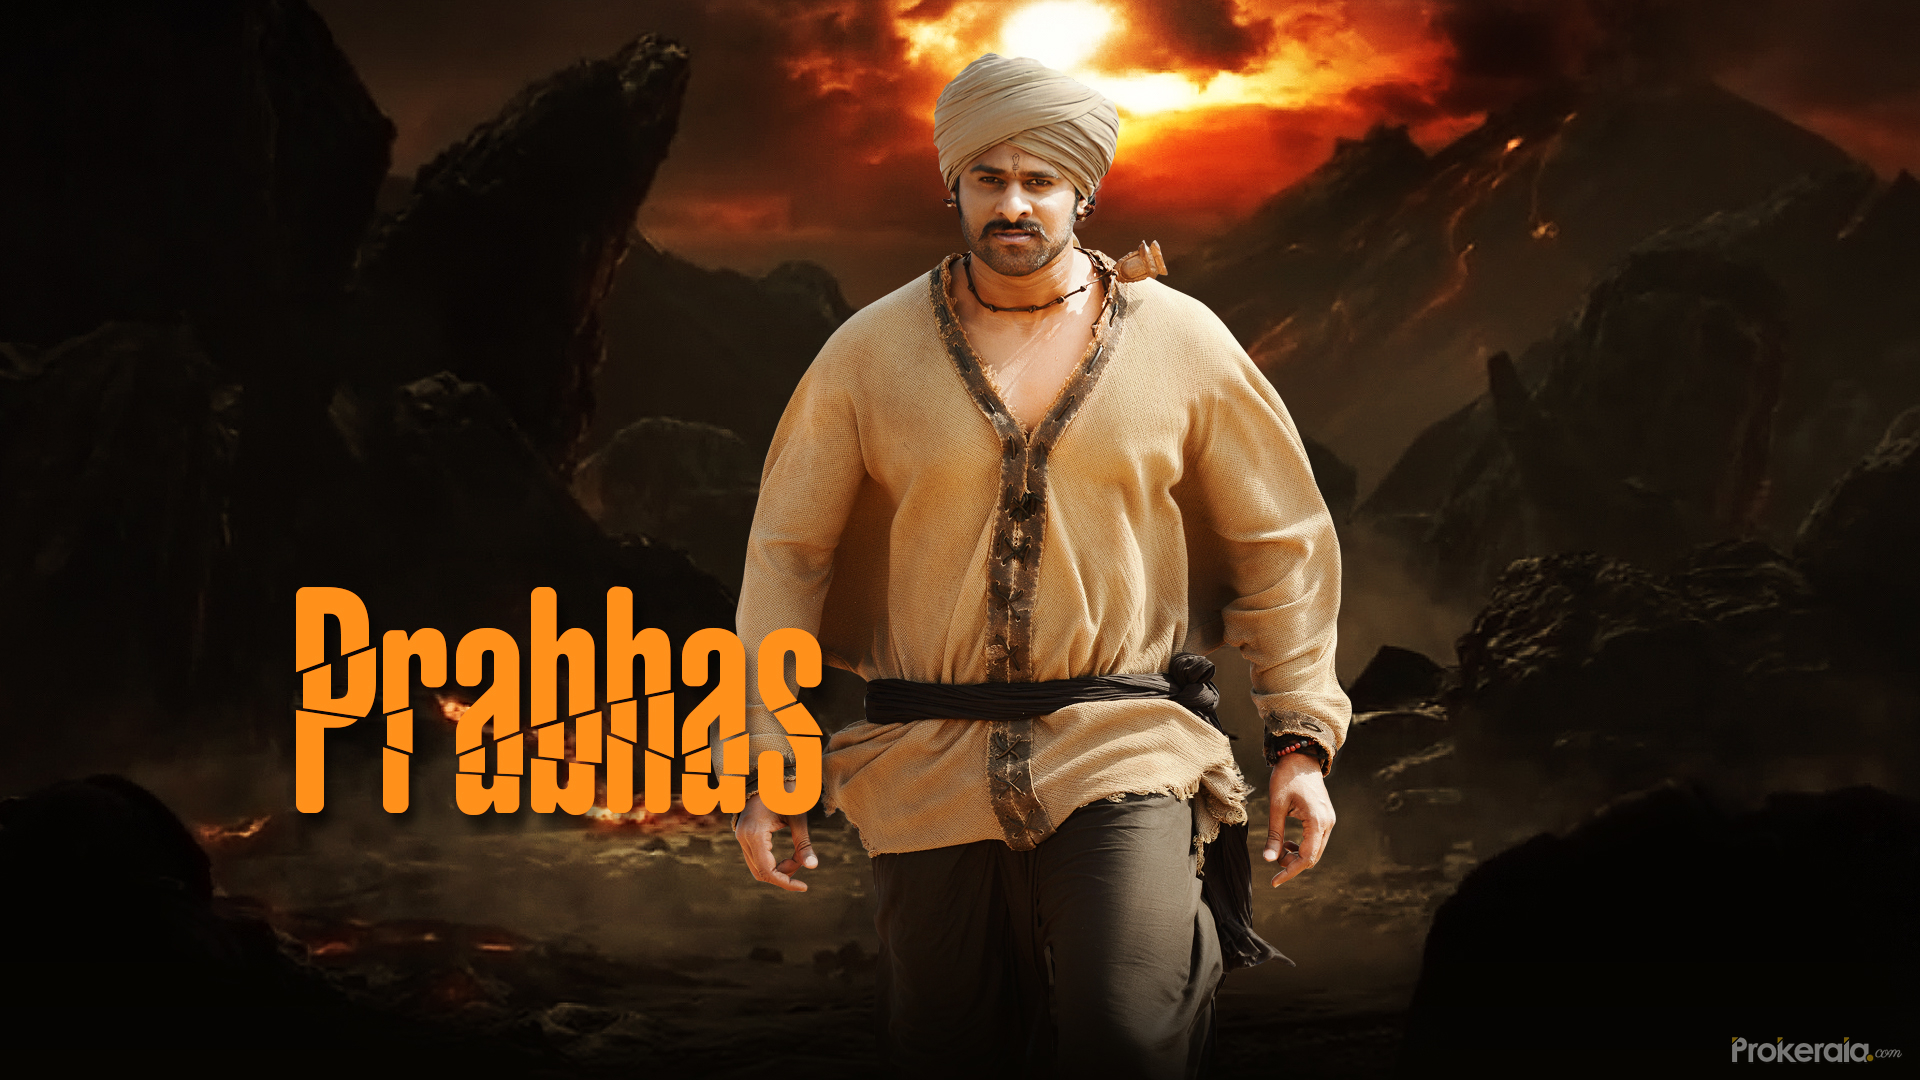 prabhas new hd wallpapers from the movie bahubali